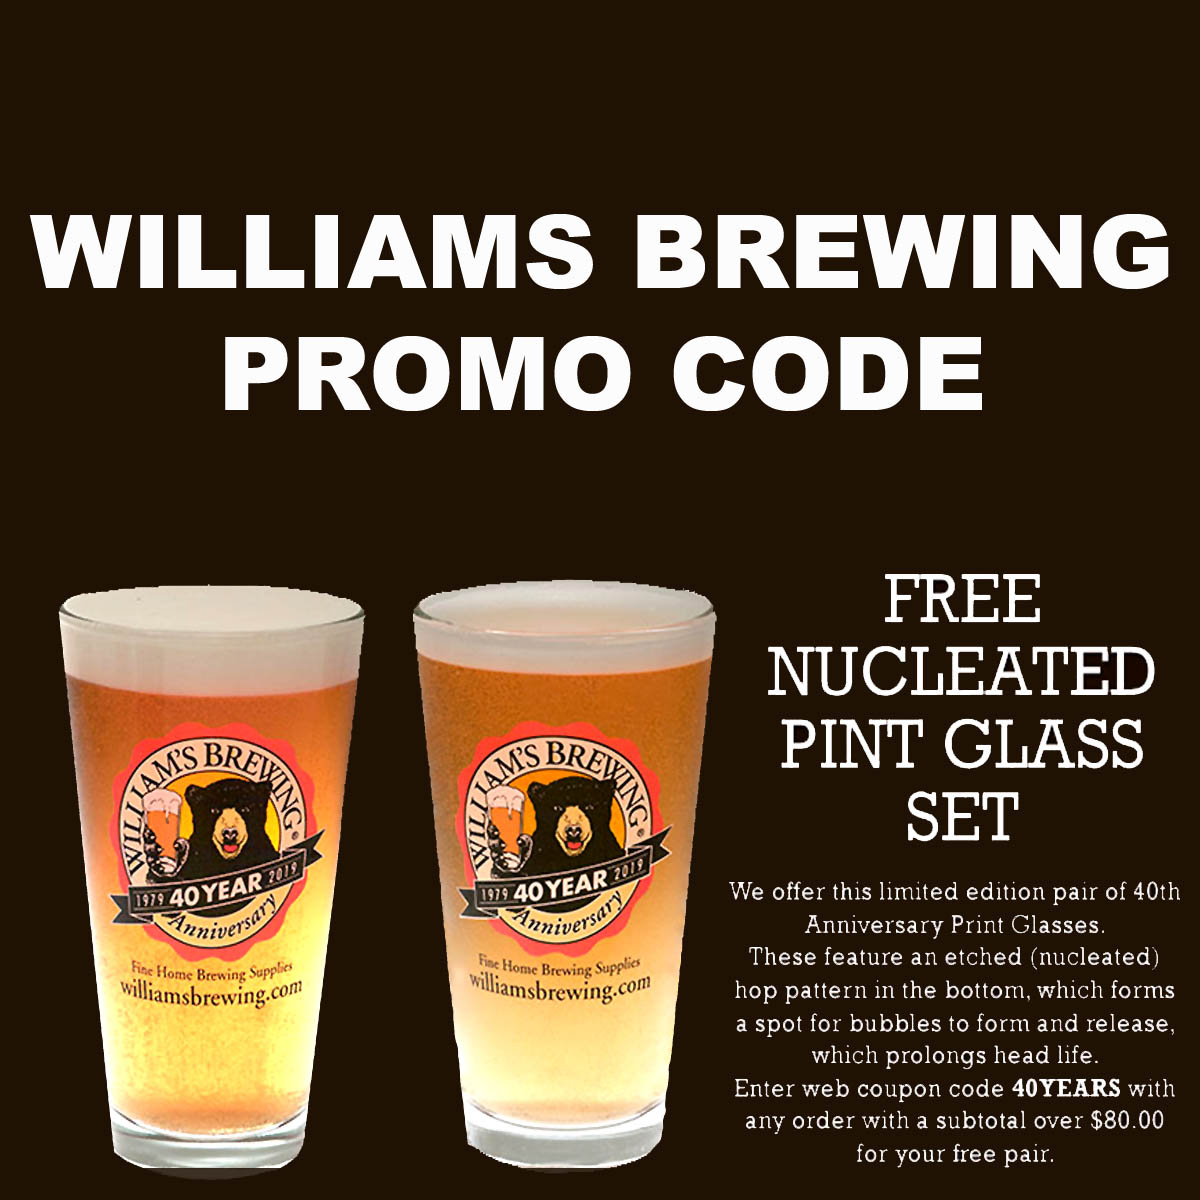 Williams Brewing Promo Code Free Pint Glasses